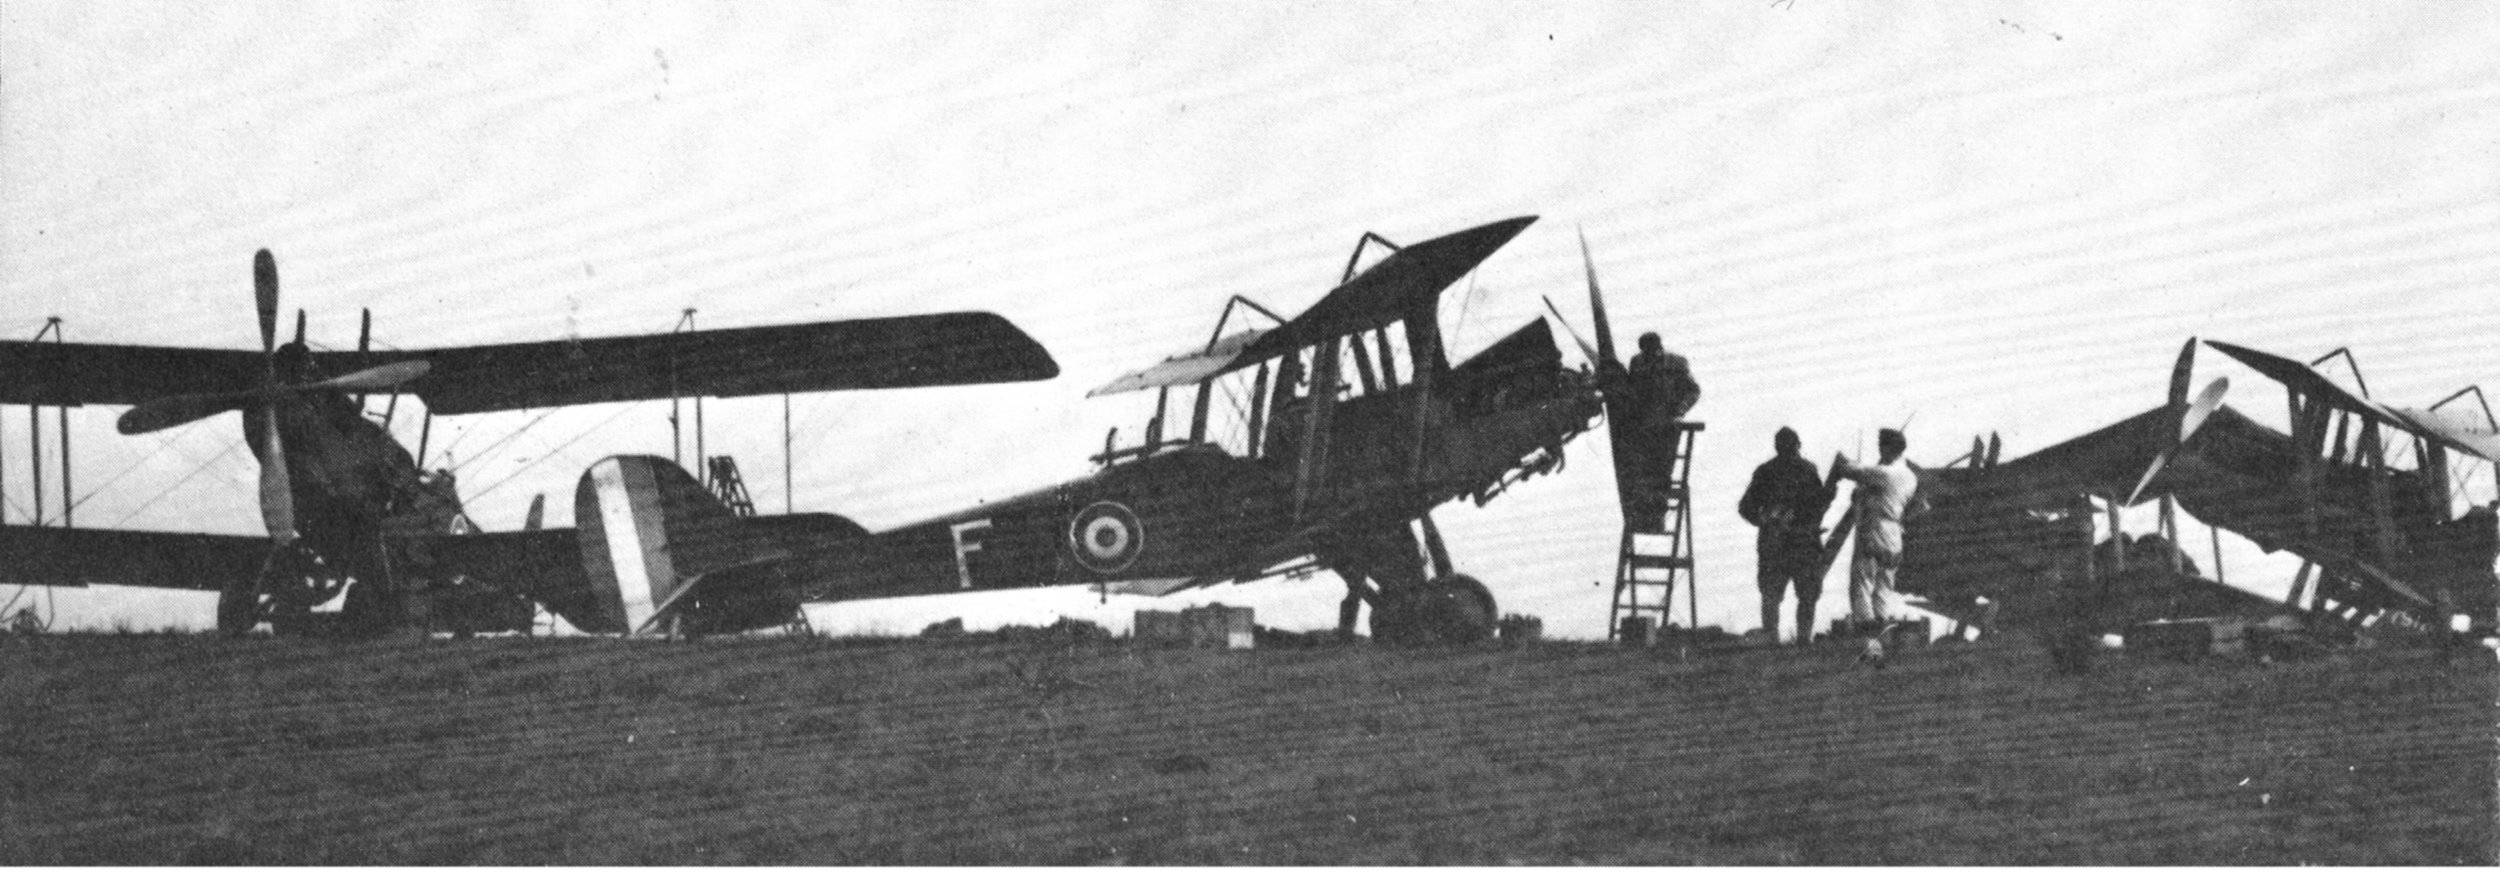 Personnel from 3 Squadron of the Australian Flying Corps and their R.E.8s during WWI. (photo via Wikipedia)